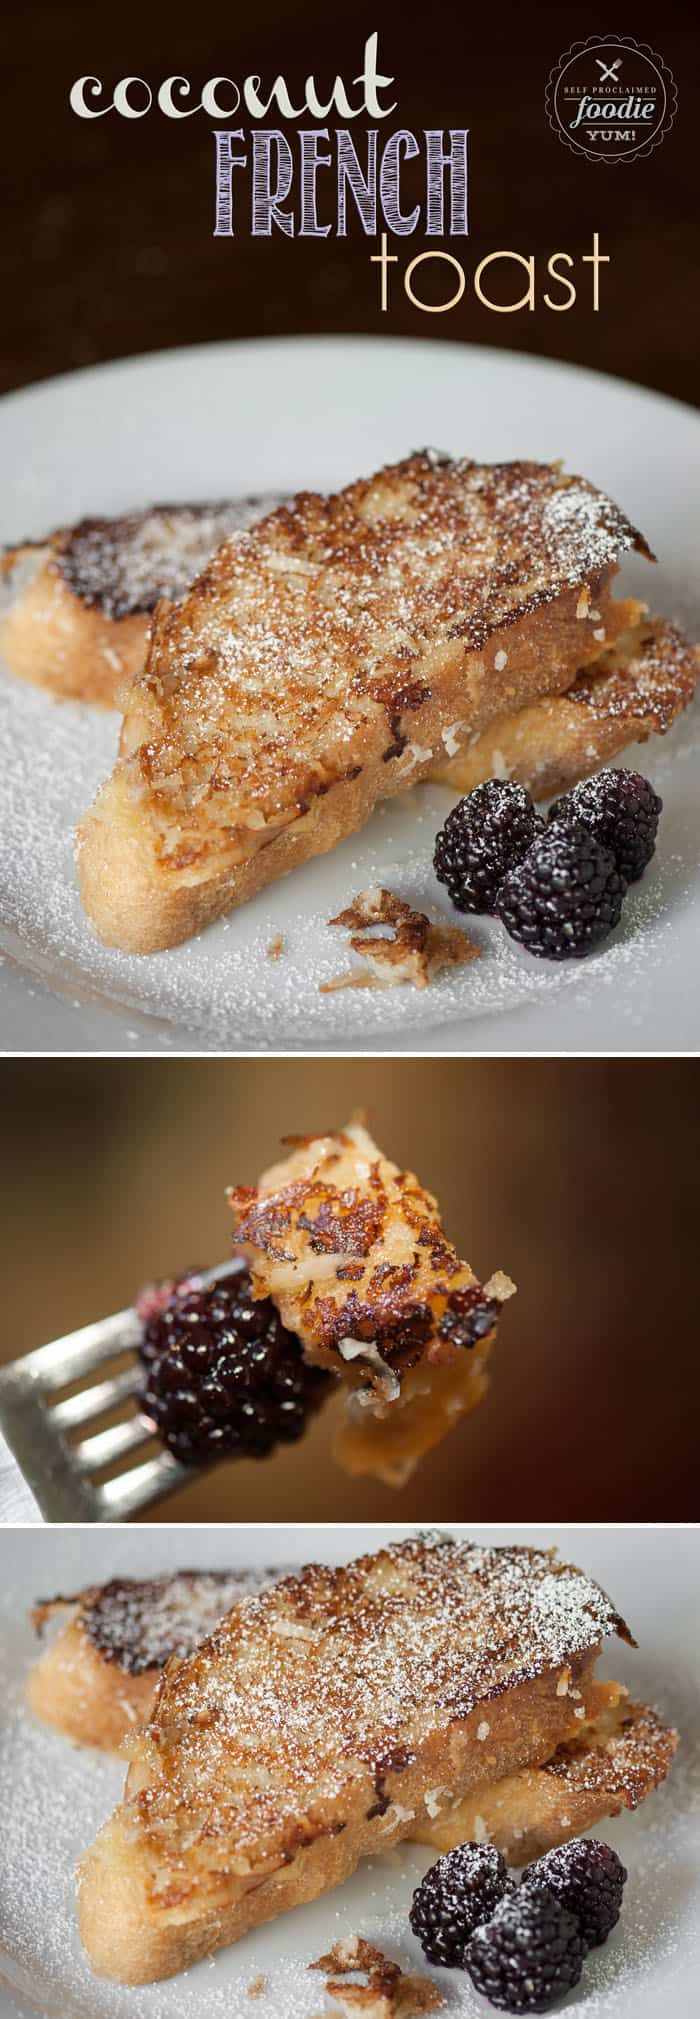 Take a step away from your plain standby french toast recipe and make some Coconut French Toast. It's made with coconut milk and sweetened shredded coconut.